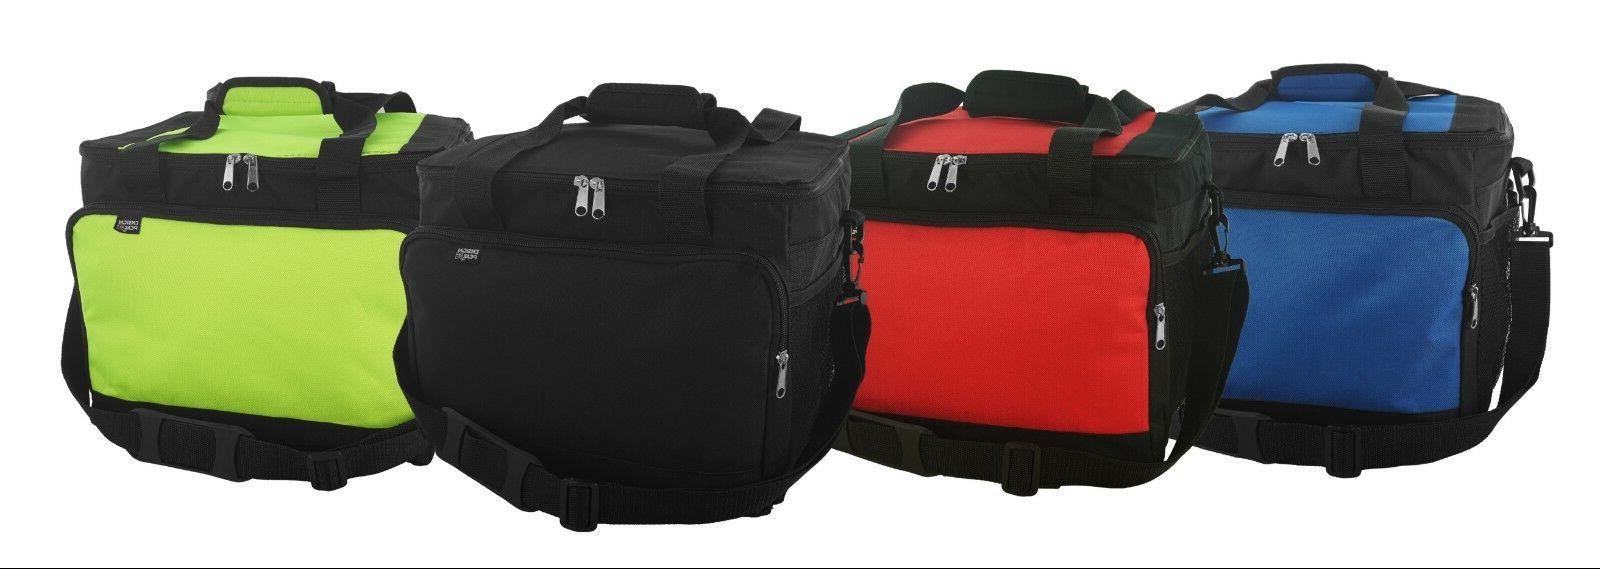 extra large insulated cooler bag